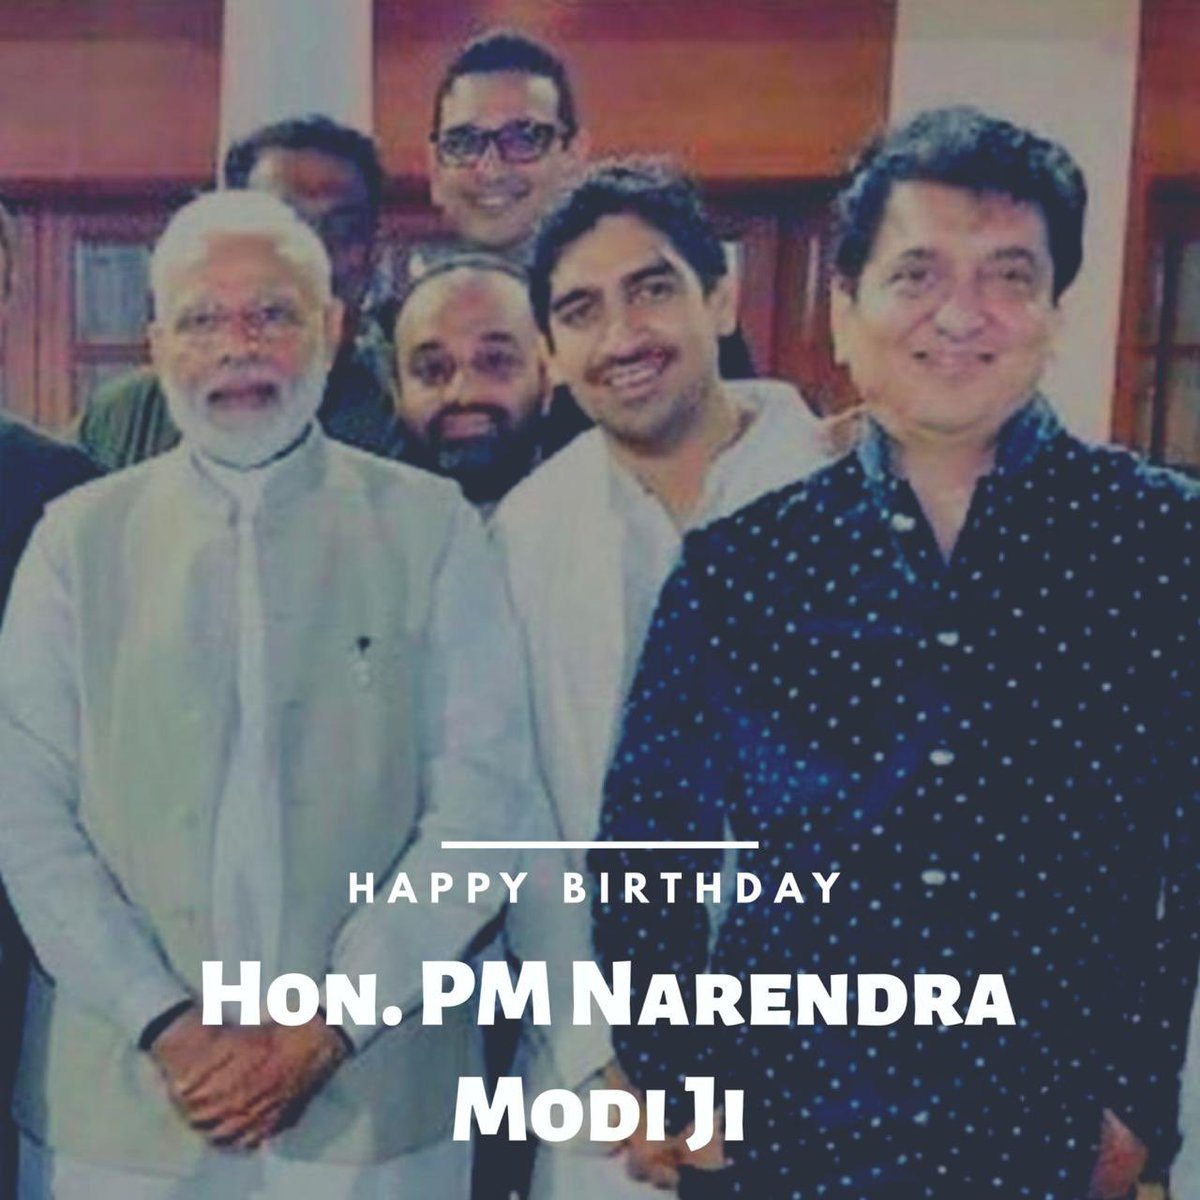 (1/2) Honourable Prime Minister @narendramodi Ji WISH YOU A VERY HAPPY BIRTHDAY!!!  Each time I met you Sir, you've been so encouraging and motivating, and your vision and ideas for the growth of the Indian Film Industry really inspires us Sir!